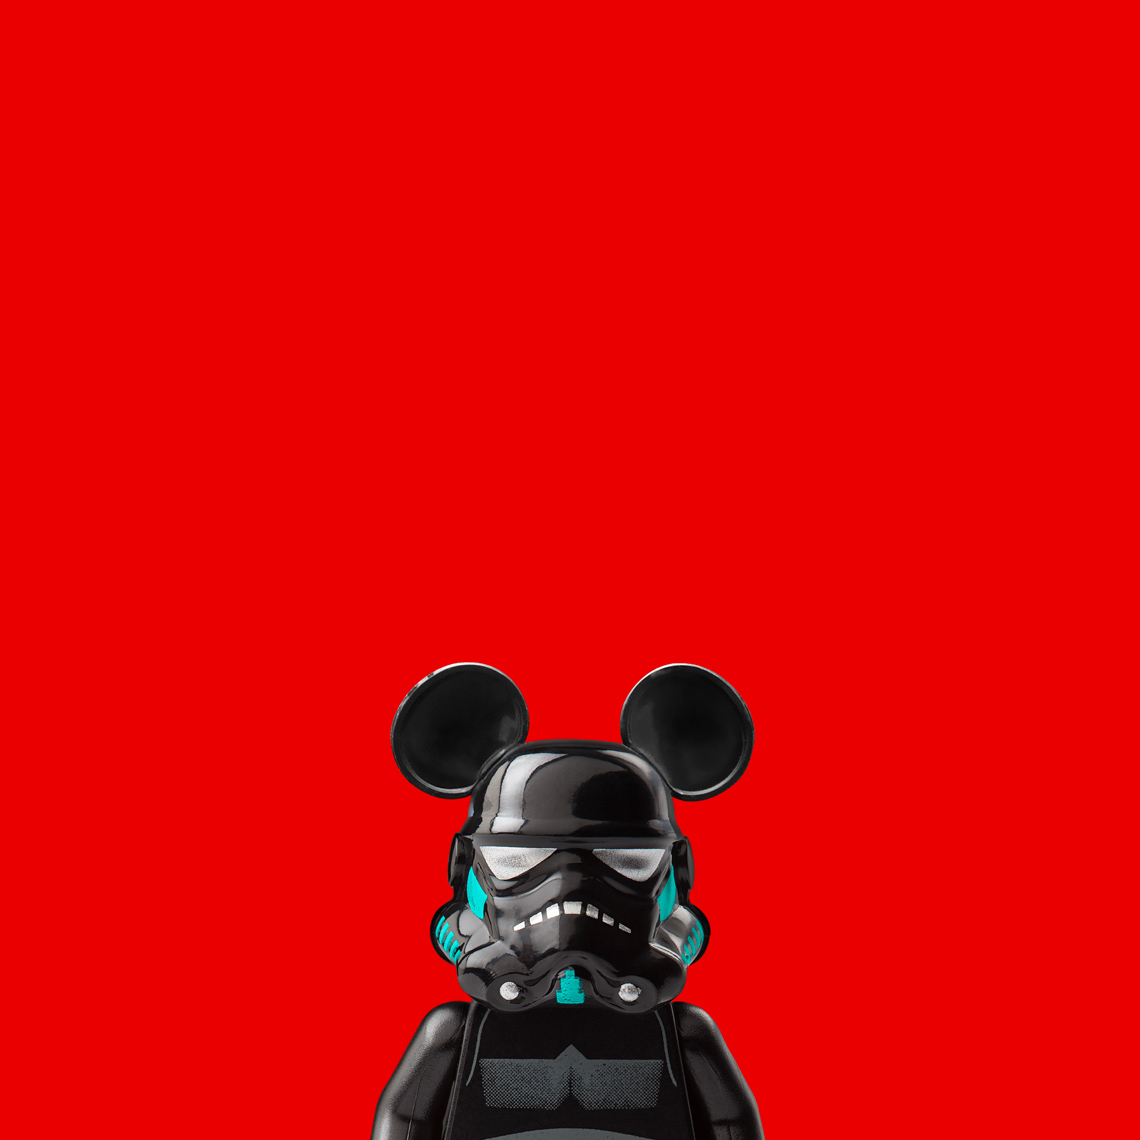 Lego Wars Mickey Mouse Trooper